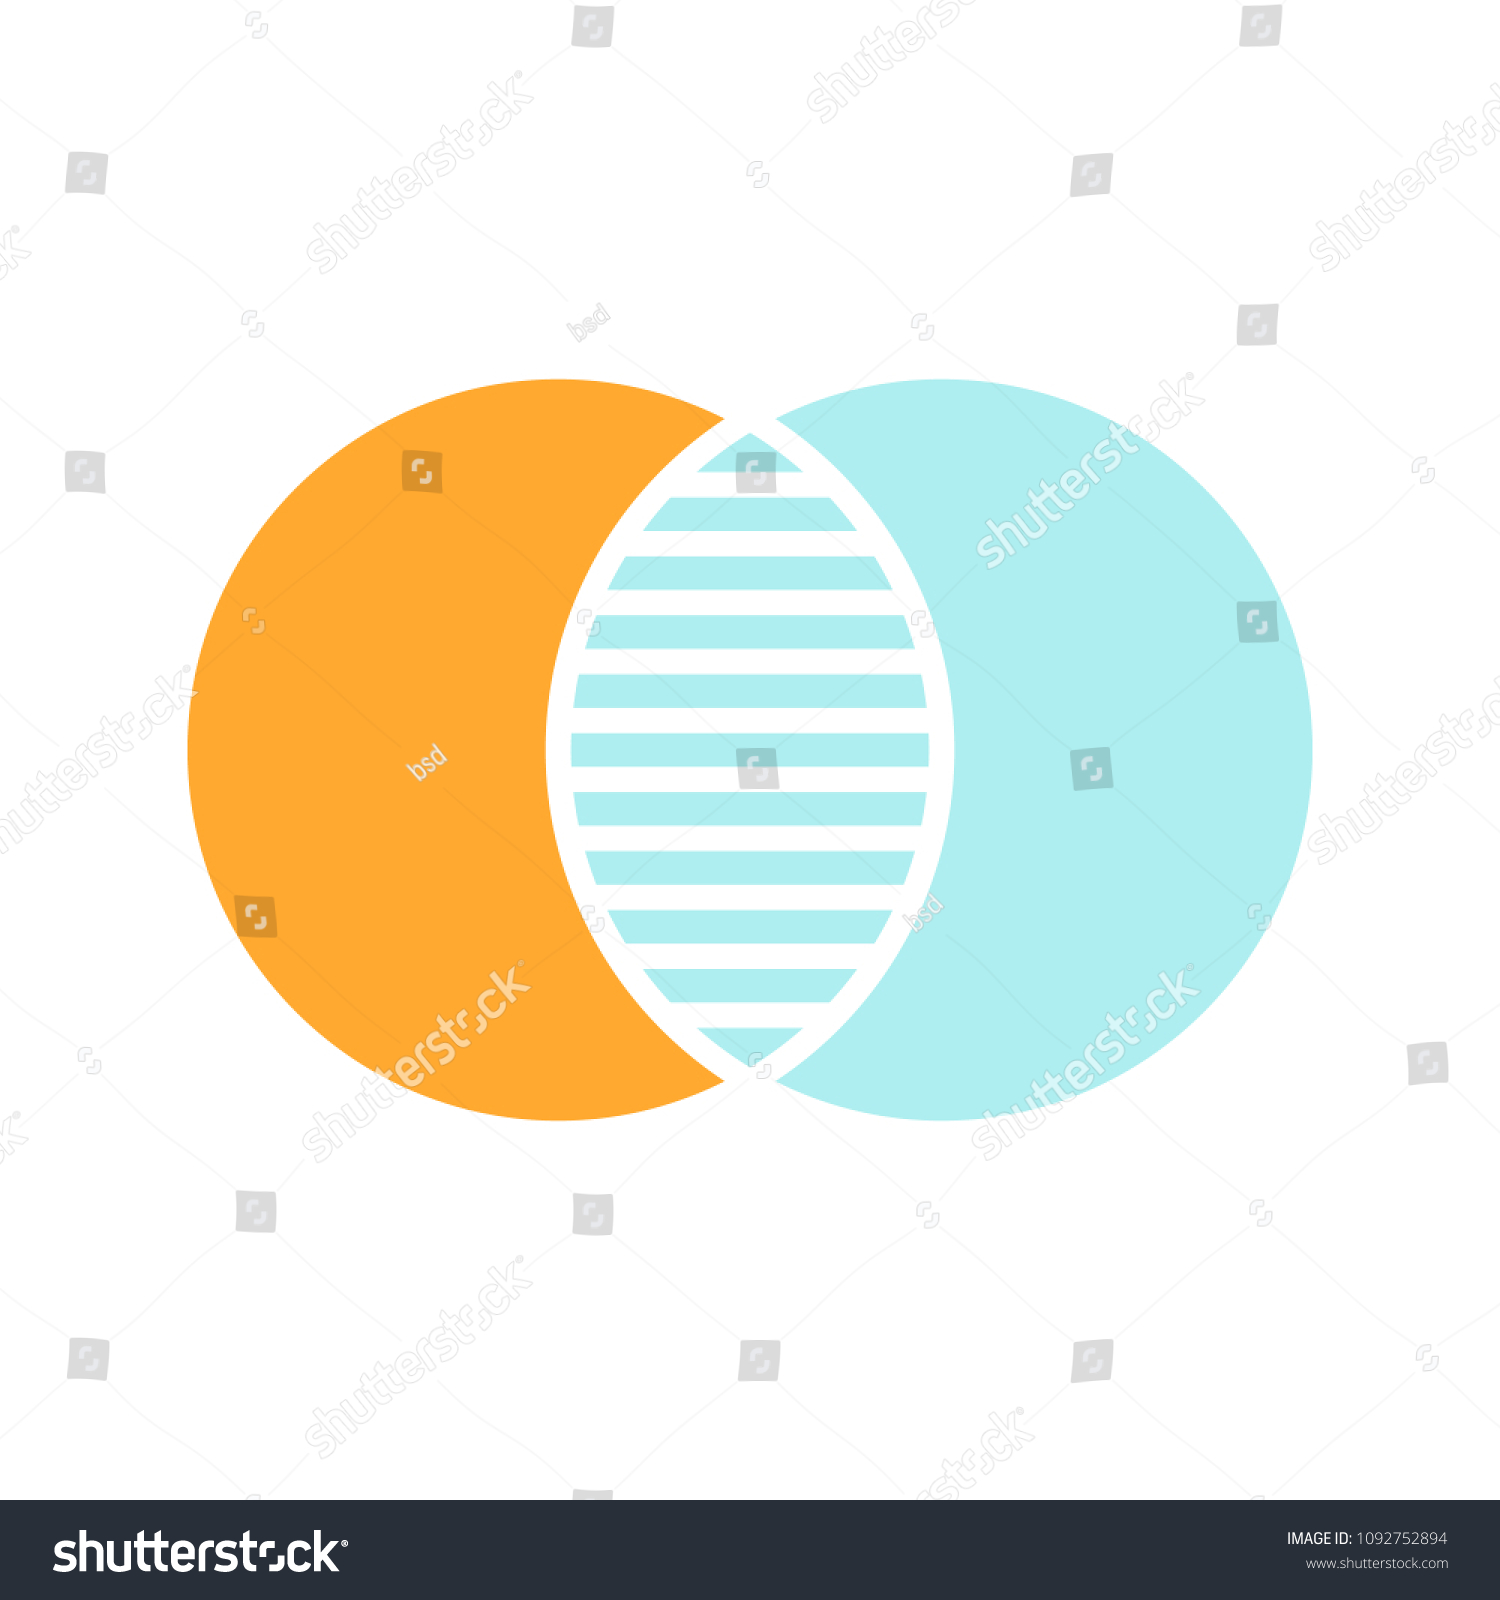 Discrete Maths Glyph Color Icon Overlapping Stock Vector Royalty Logic Venn Diagram Pictures Circles Intersection Silhouette Symbol